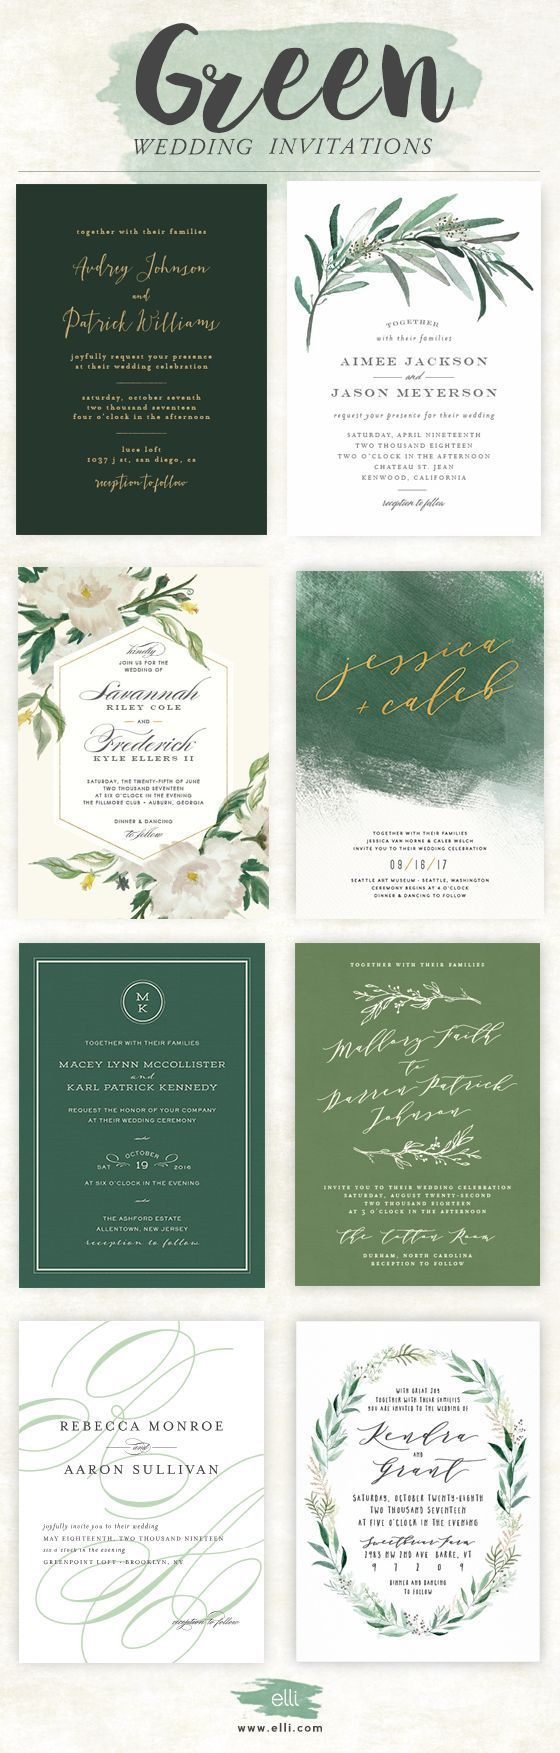 diy wedding invitations for second marriage%0A Gorgeous selection of green wedding invitations from Elli com